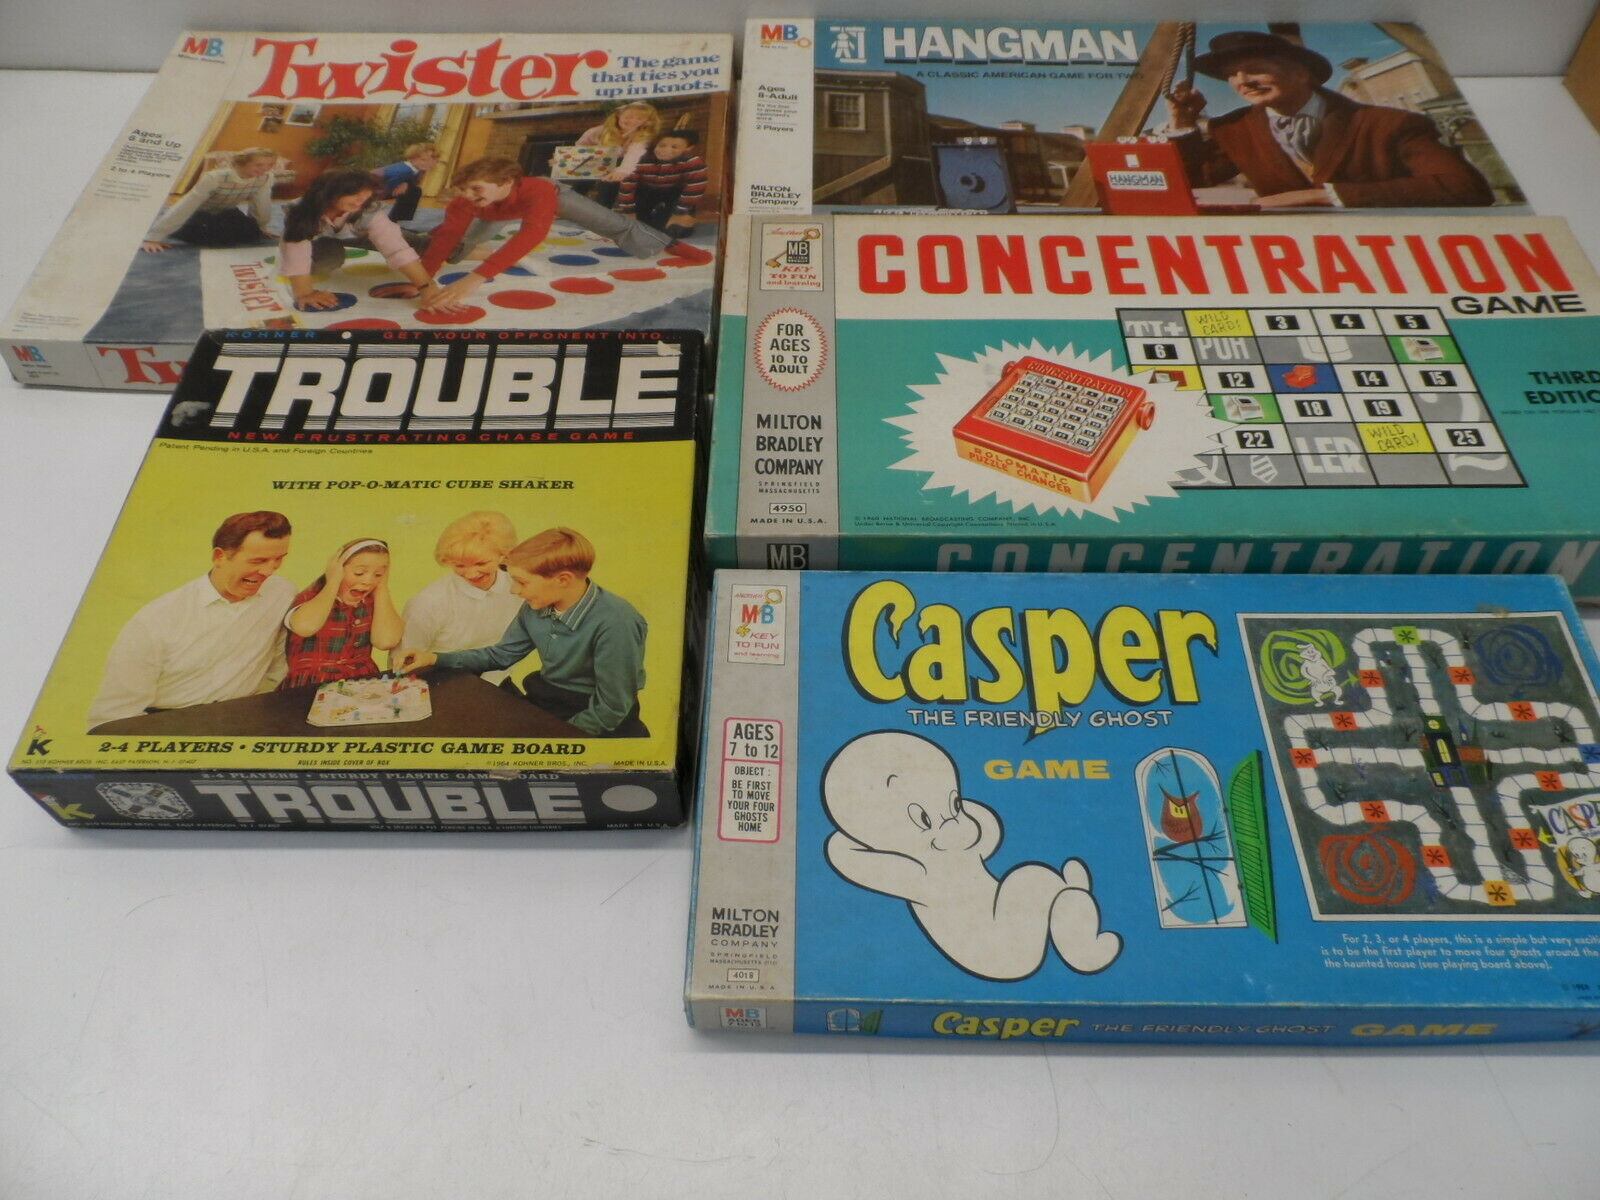 Lot of 5 Vintage Board Games -- Twister, Concentration, Casper, Trouble, Hangman